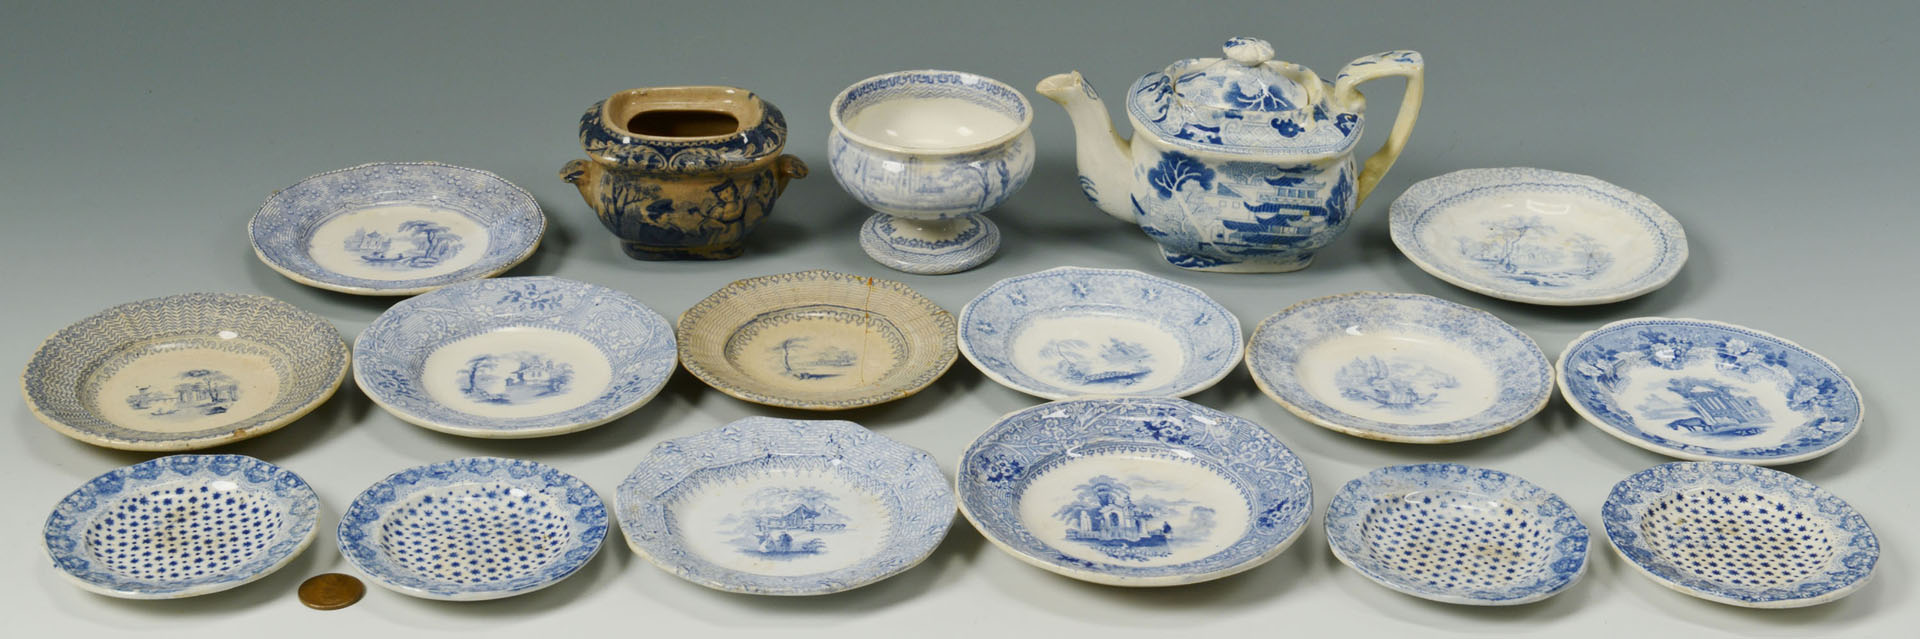 Lot 281: 47 pcs Blue & White English Transferware